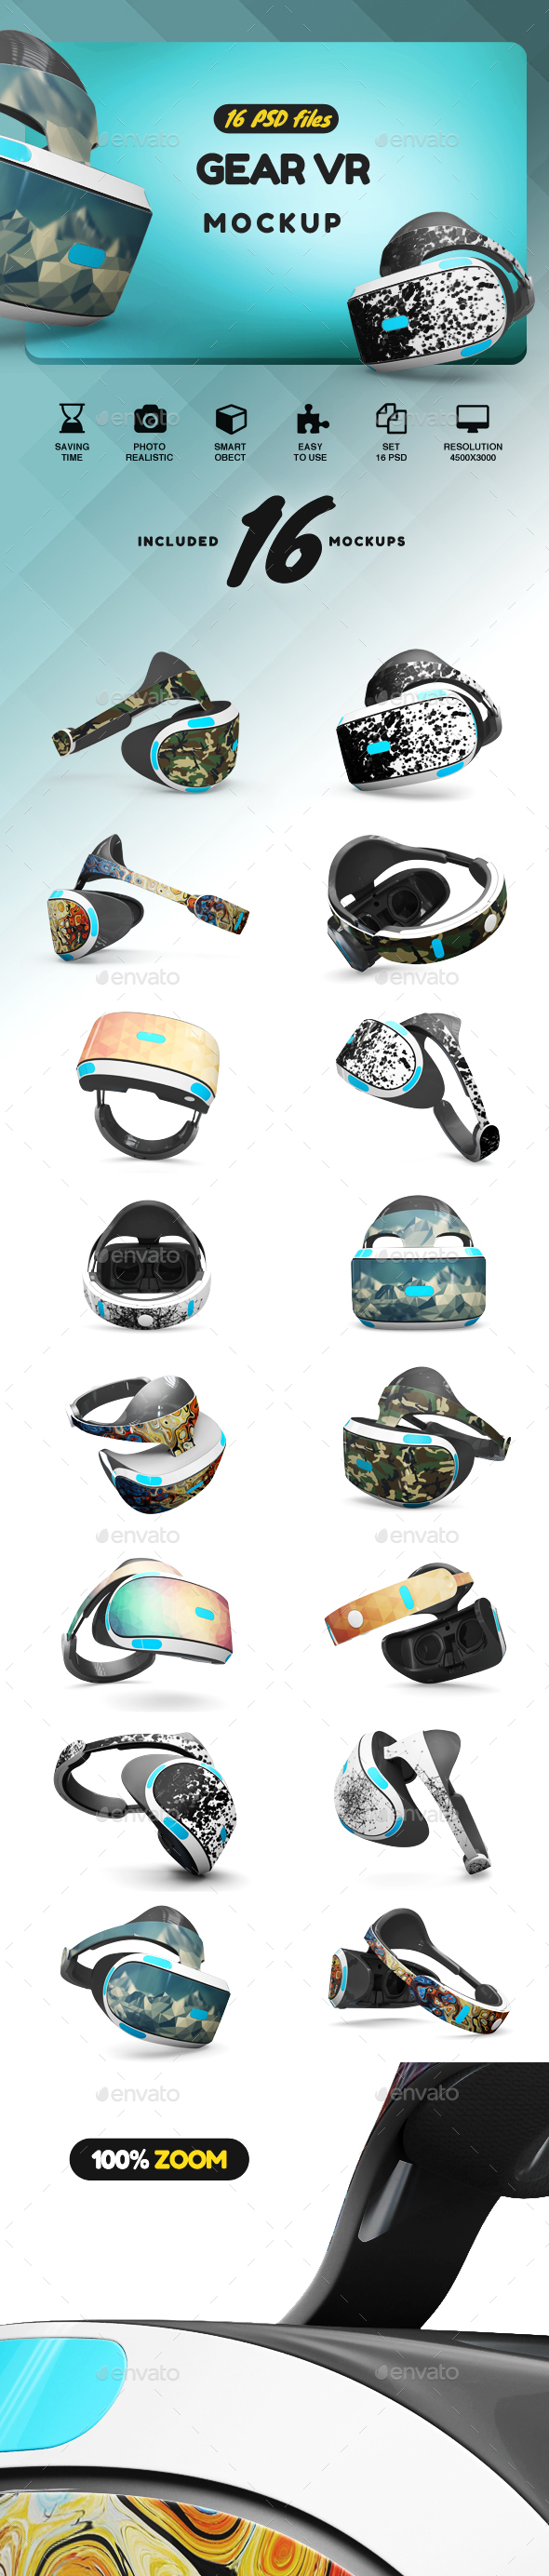 Gear VR MockUp - Product Mock-Ups Graphics